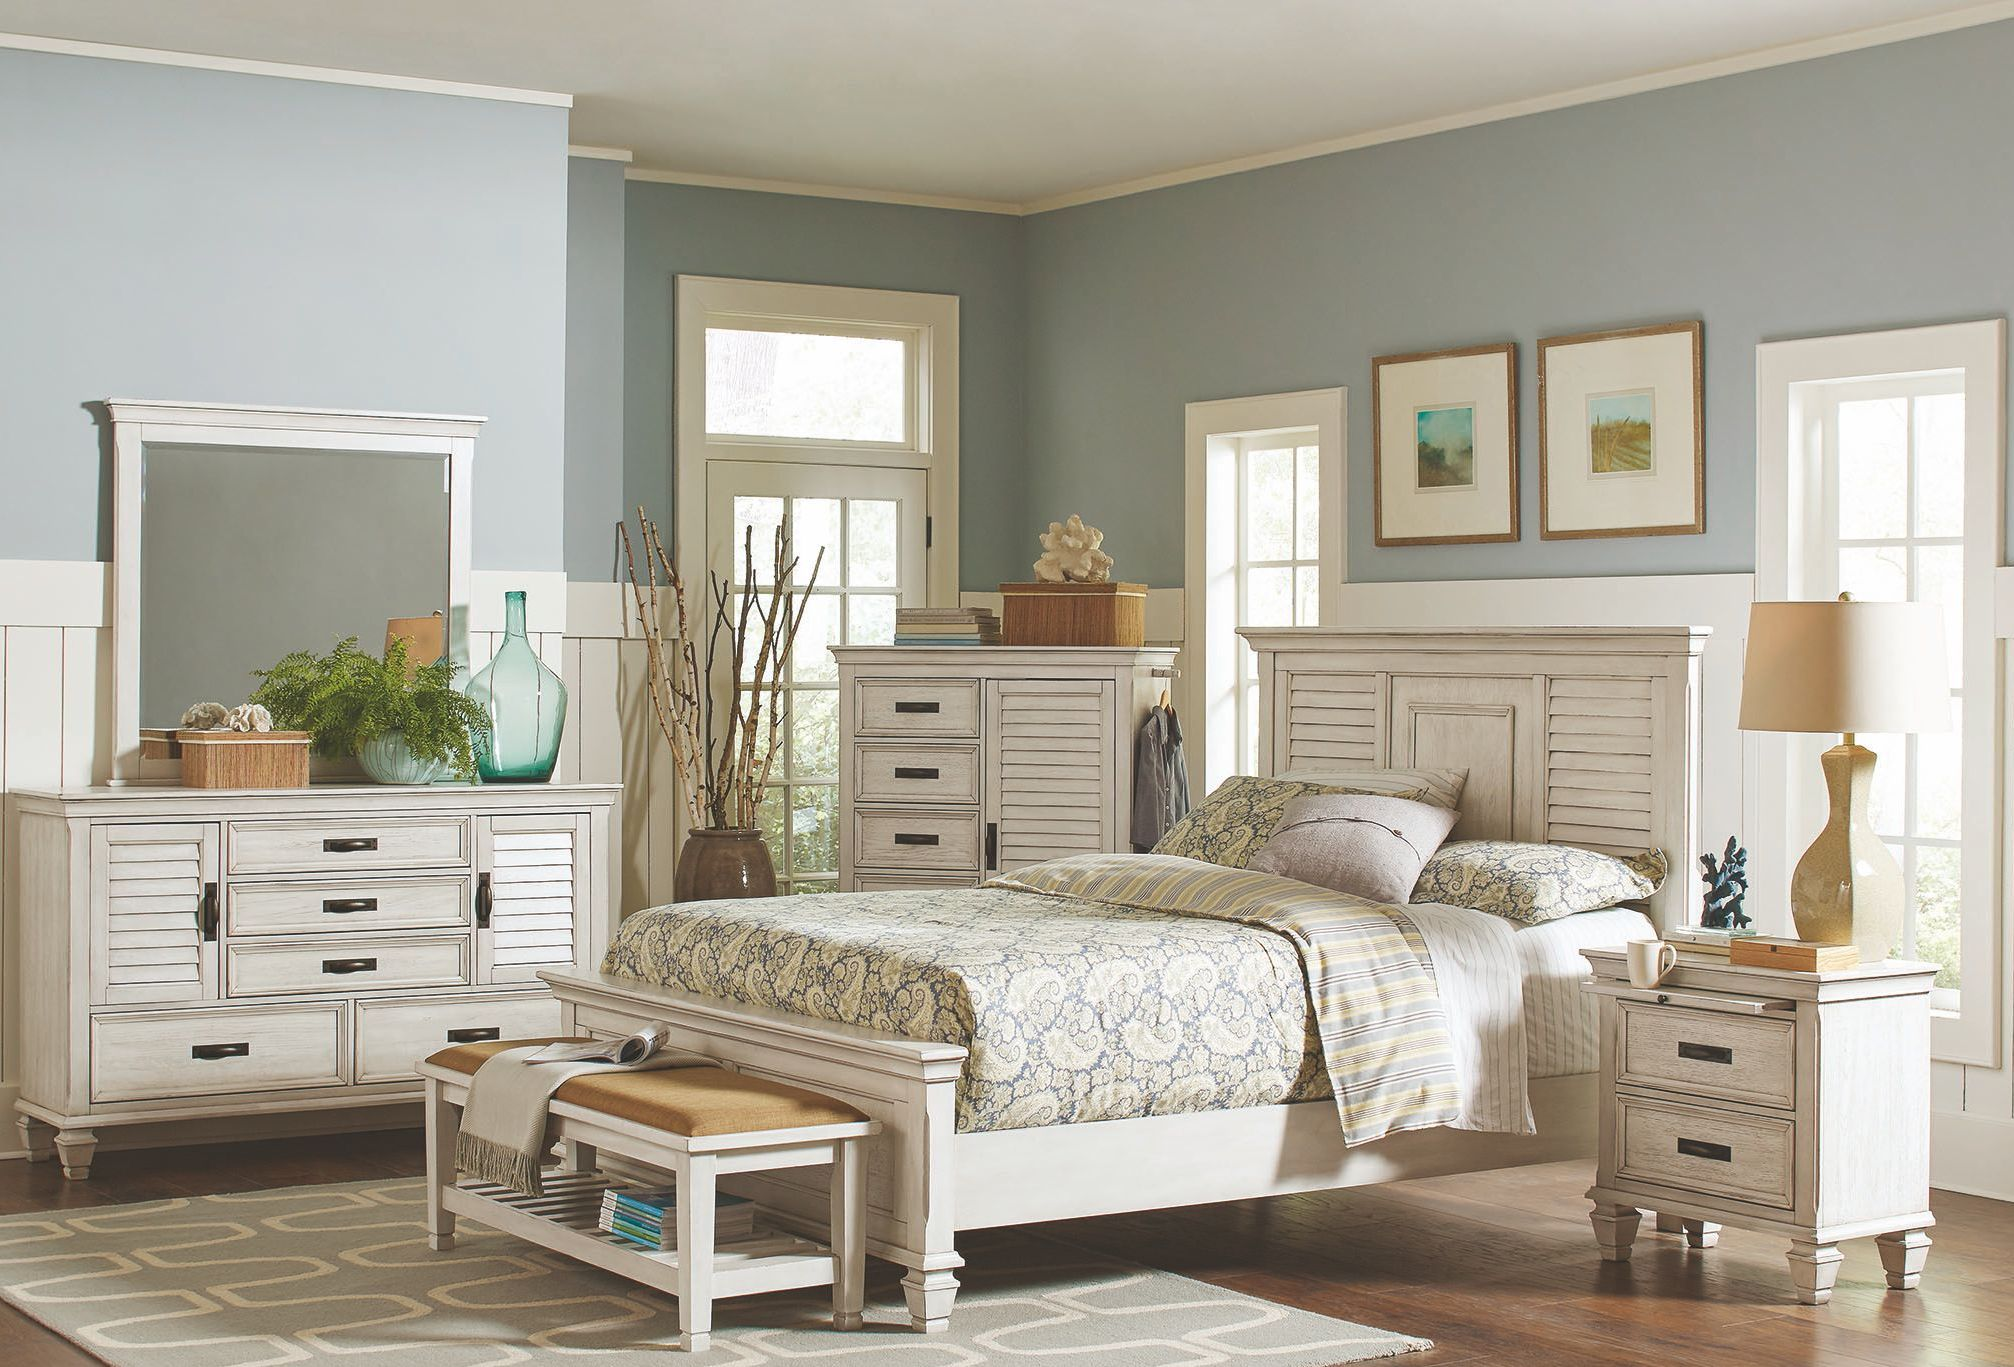 Liza antique white panel bedroom set 1stopbedrooms - White vintage bedroom furniture sets ...